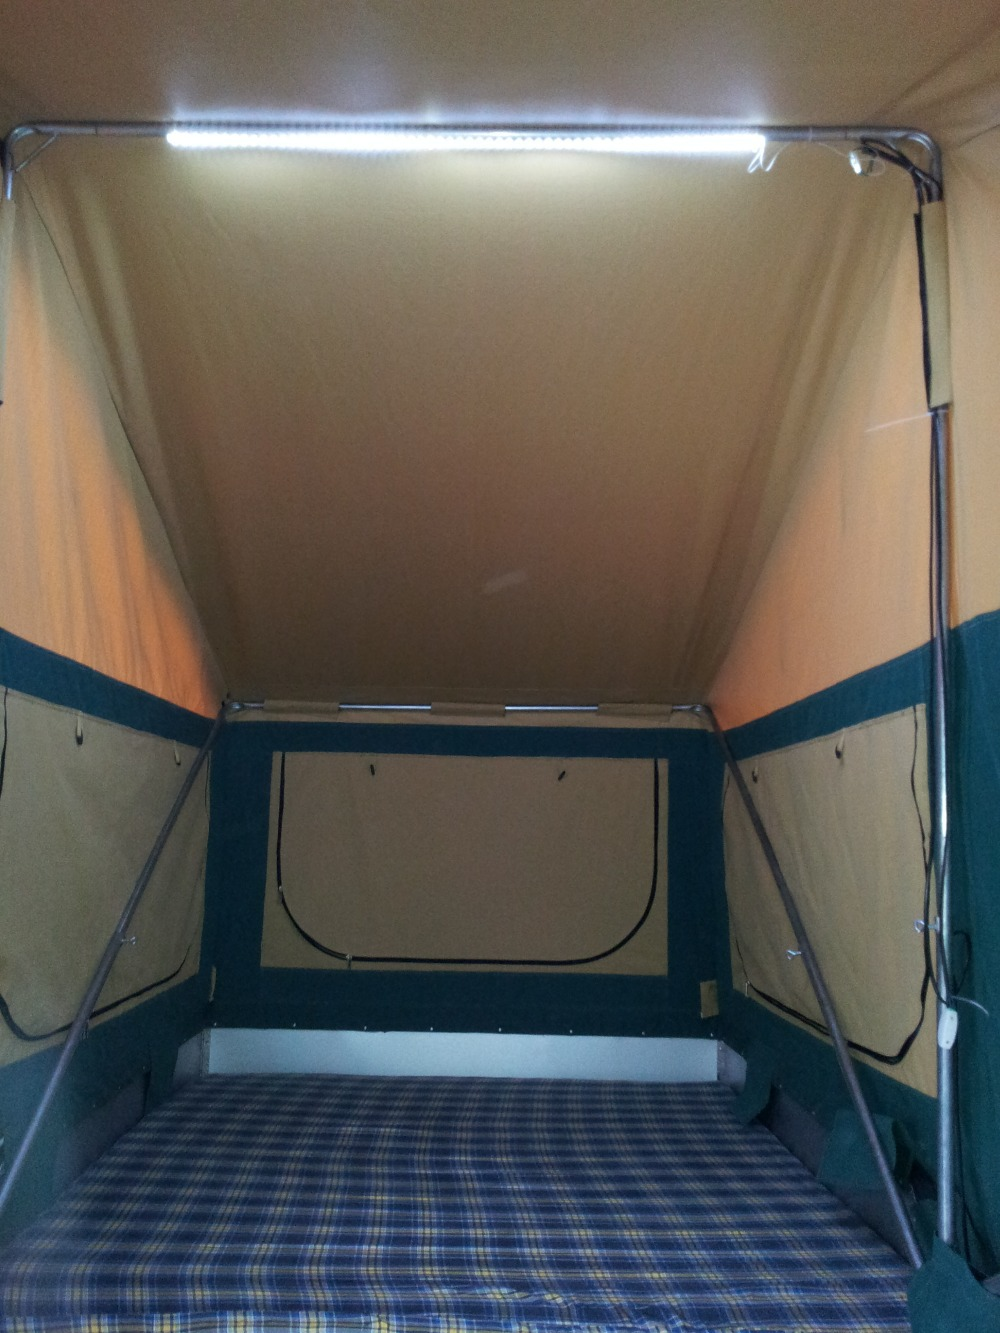 Camper Trailer Kitchen Australia Standard Off Road Hard Floor Camper Trailer With 14 Oz